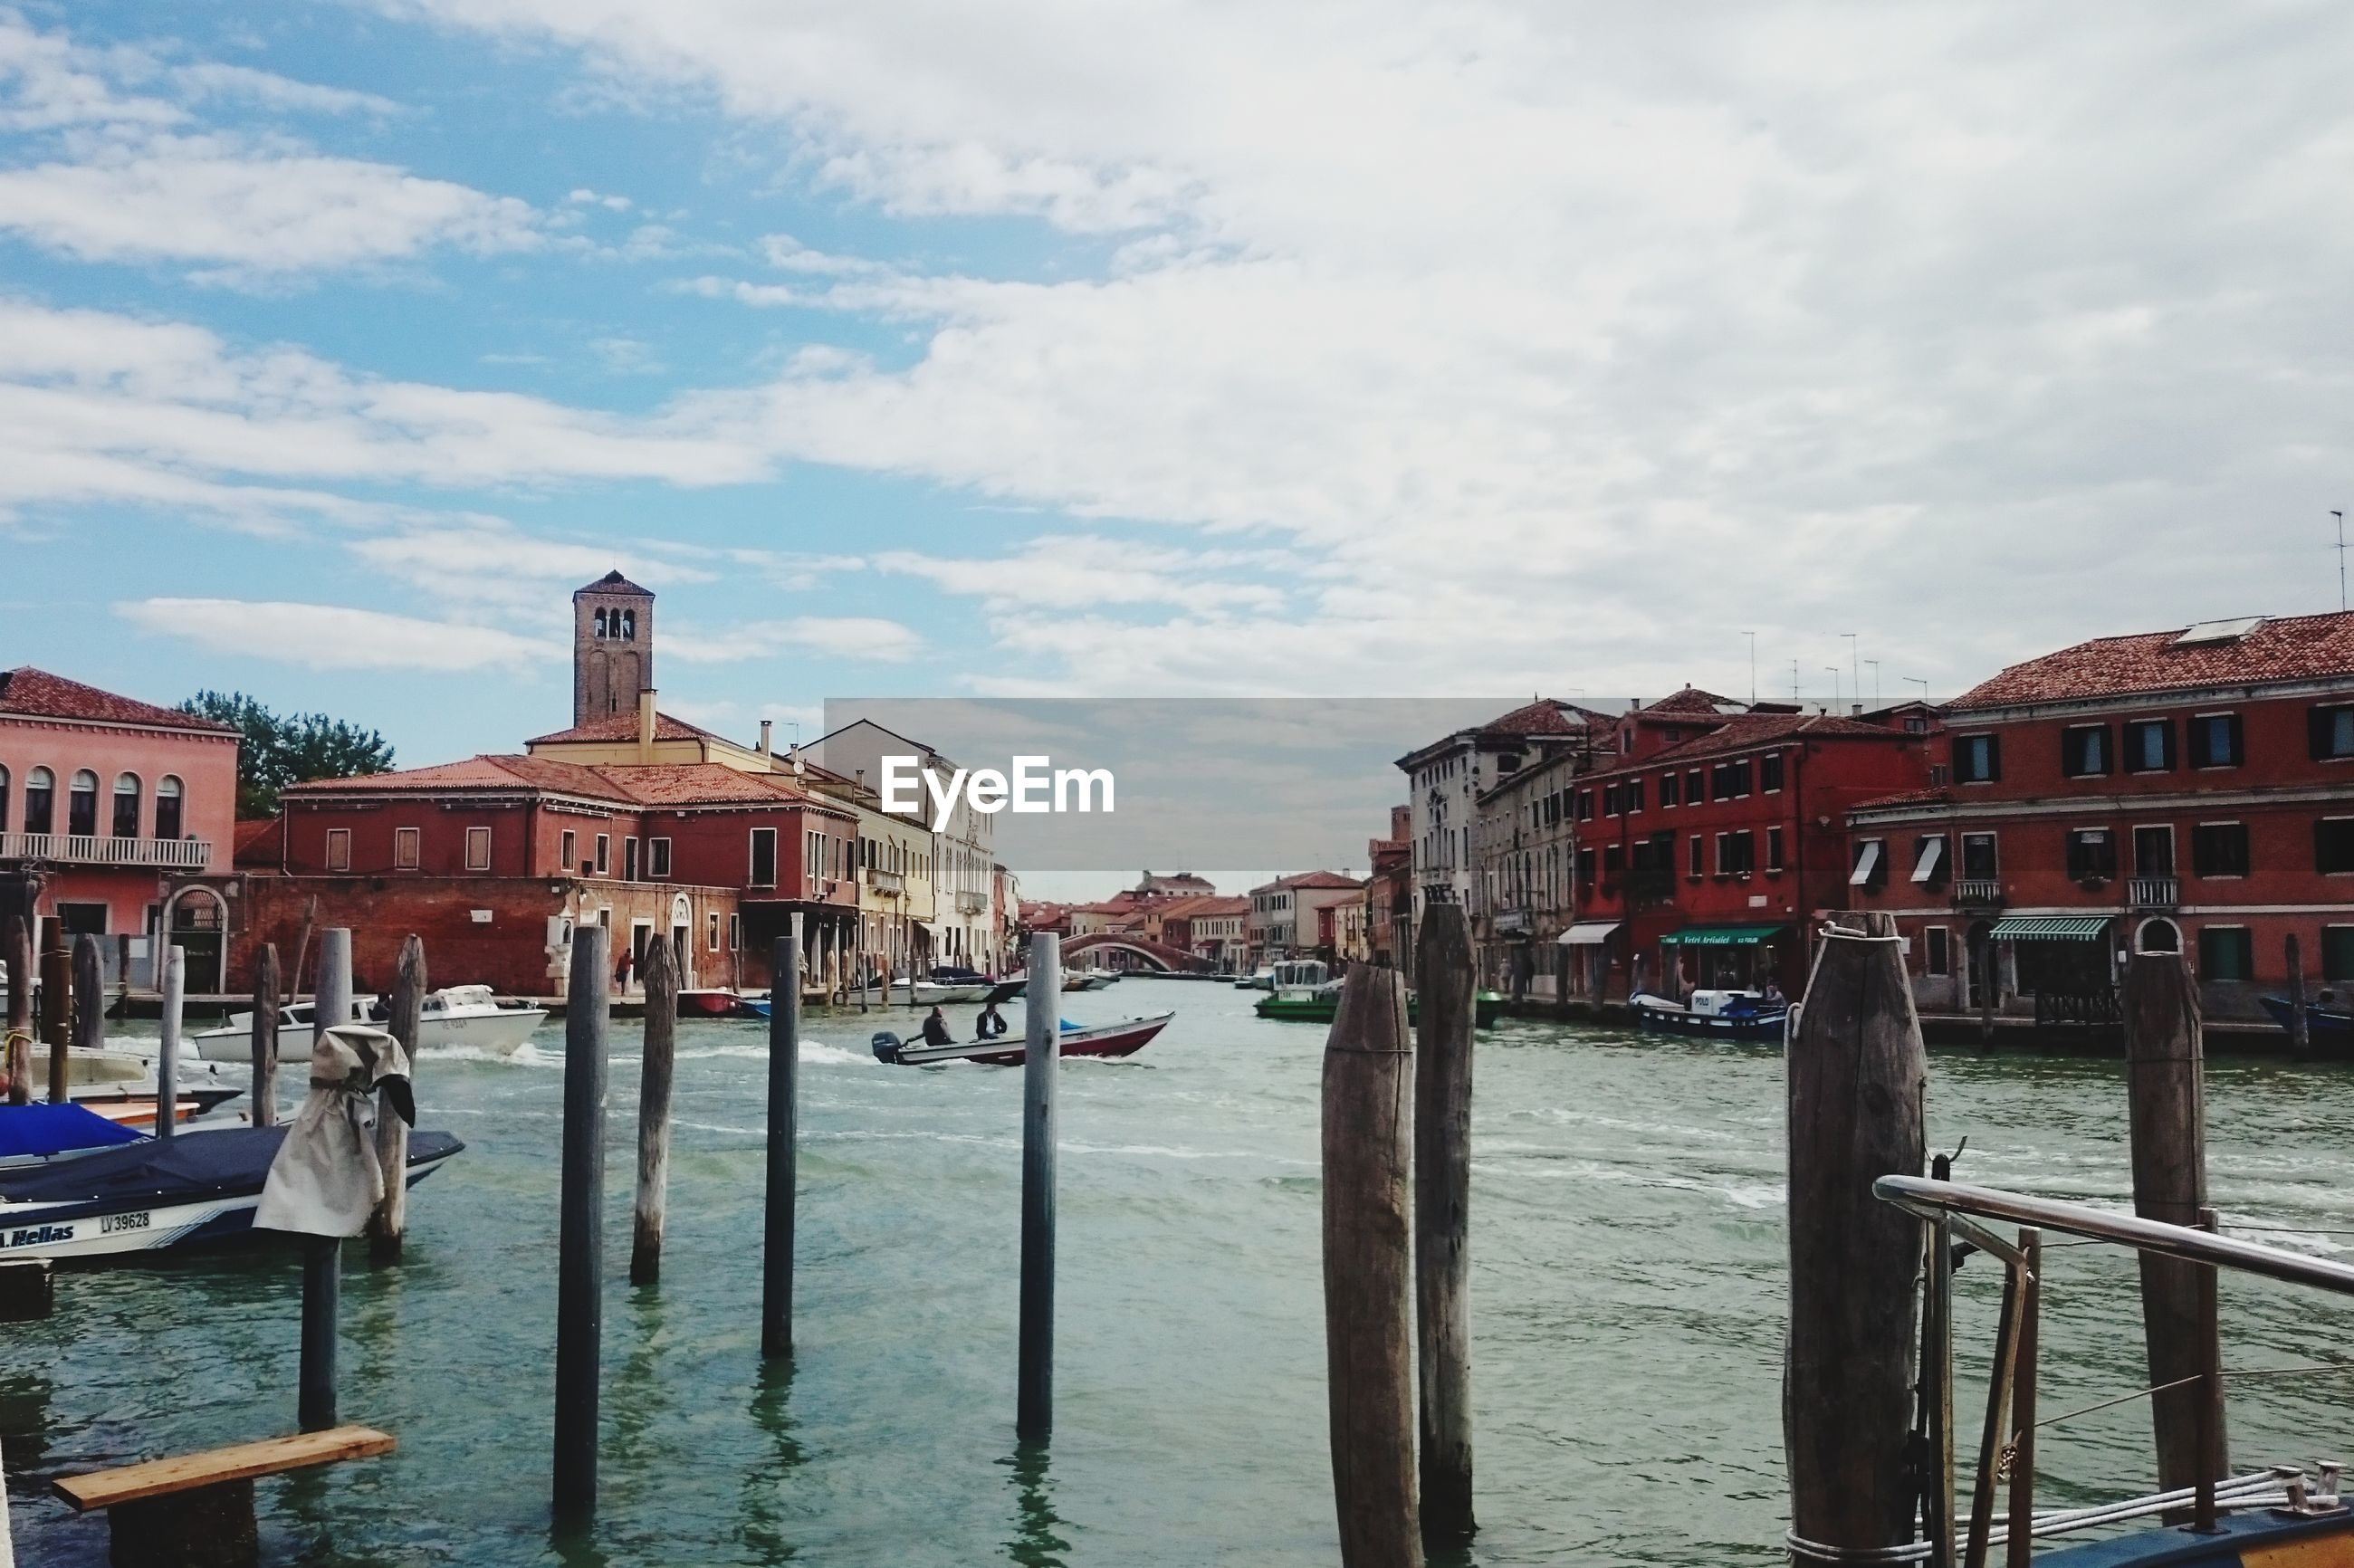 architecture, built structure, building exterior, water, cloud - sky, sky, building, nautical vessel, transportation, mode of transportation, nature, canal, city, residential district, wooden post, day, post, house, travel destinations, no people, outdoors